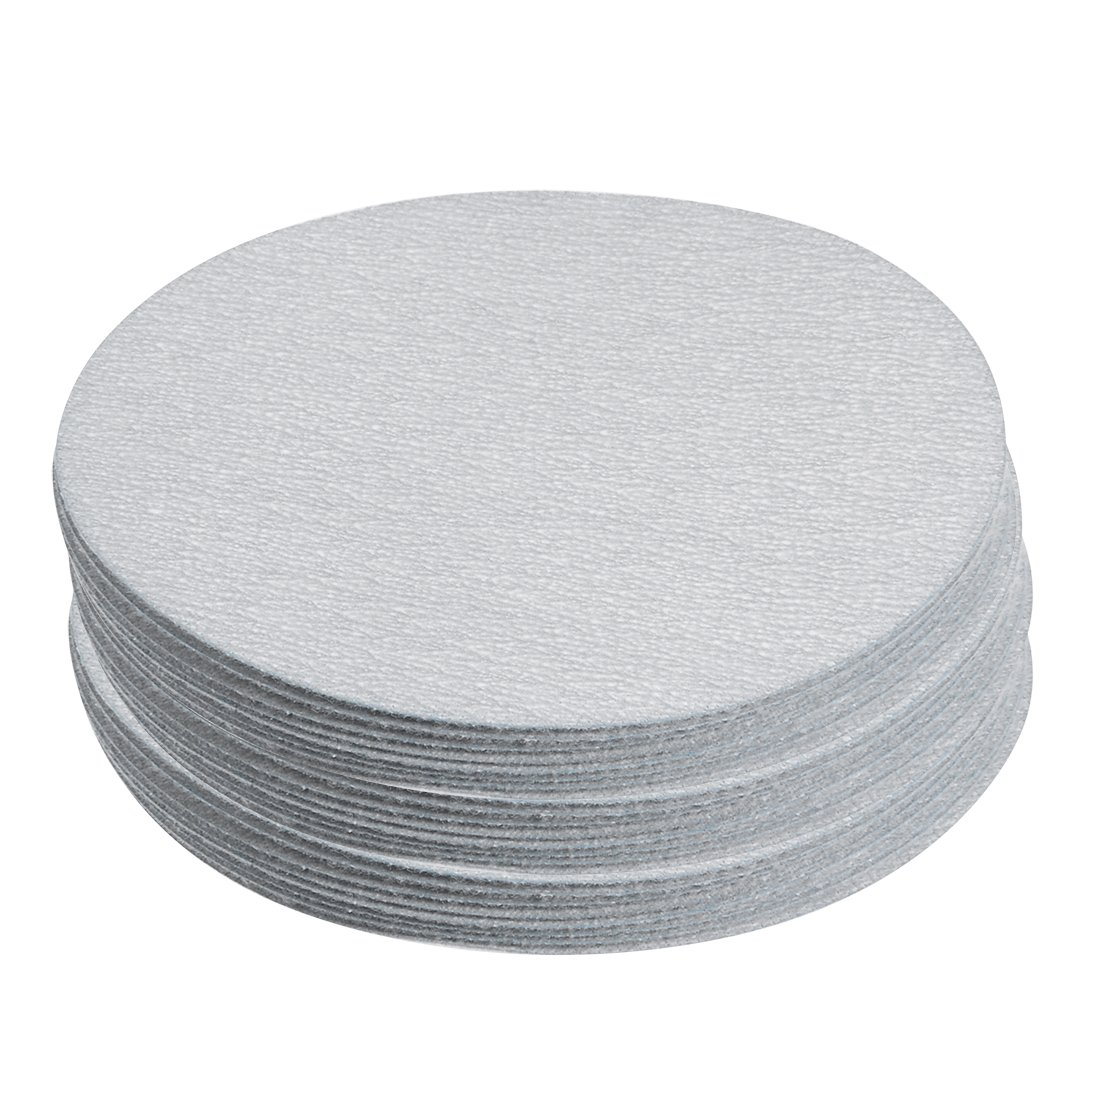 uxcell 30 Pcs 4-Inch Aluminum Oxide White Dry Hook and Loop Sanding Discs Flocking Sandpaper 600 Grit